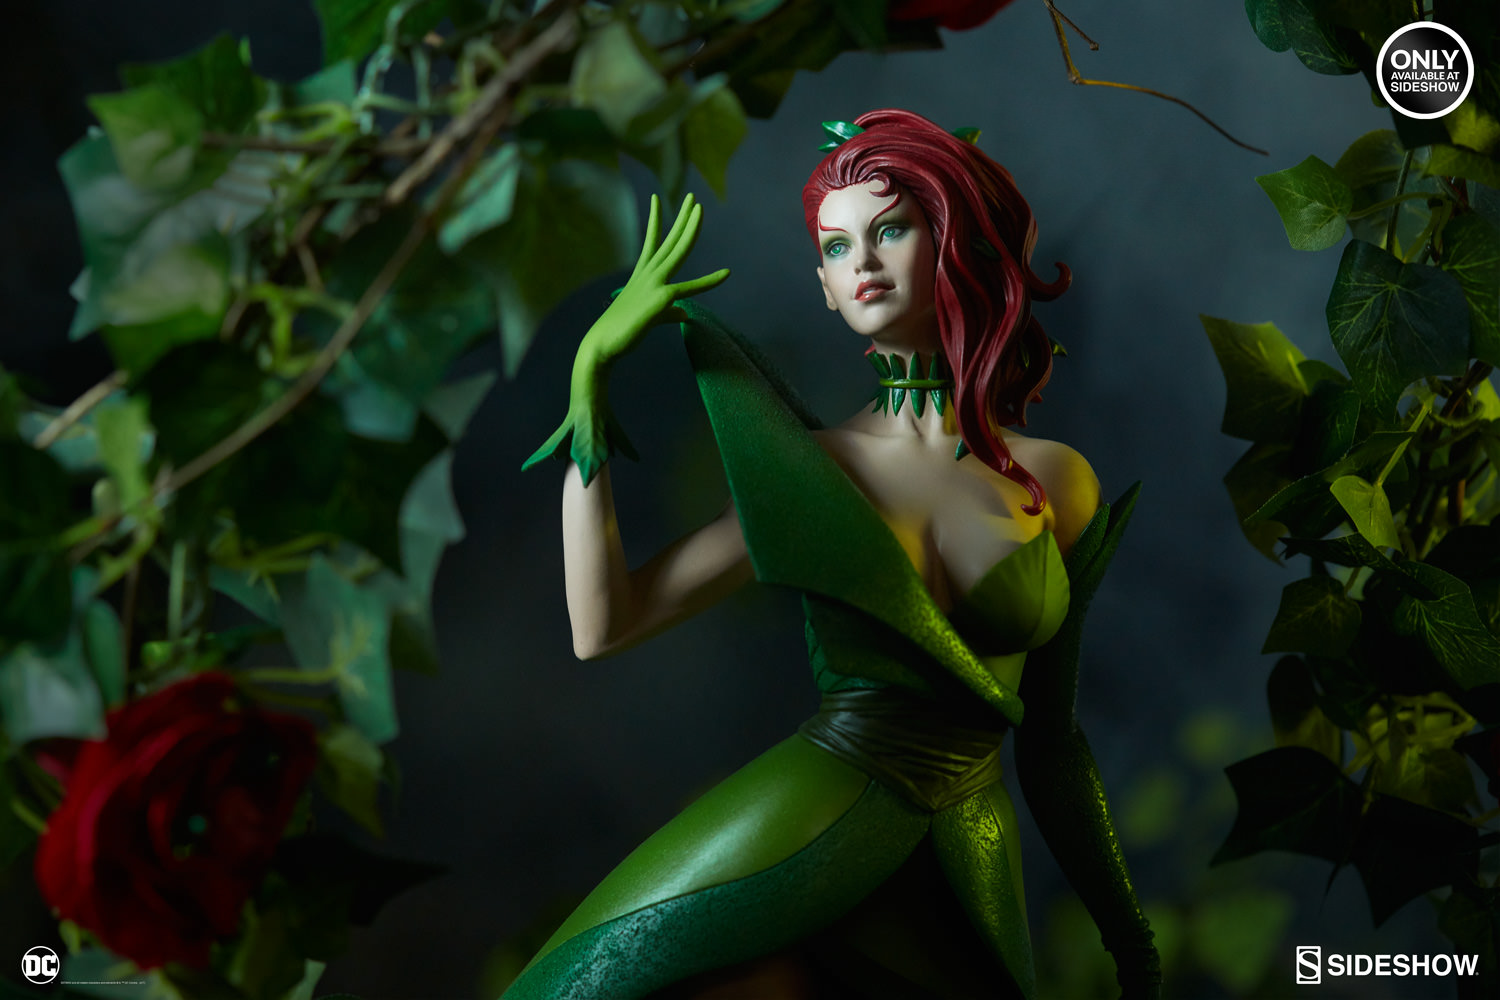 Sideshow Collectibles Stanley Artgerm Lau Artist Series Poison Ivy Statue Pre-Orders